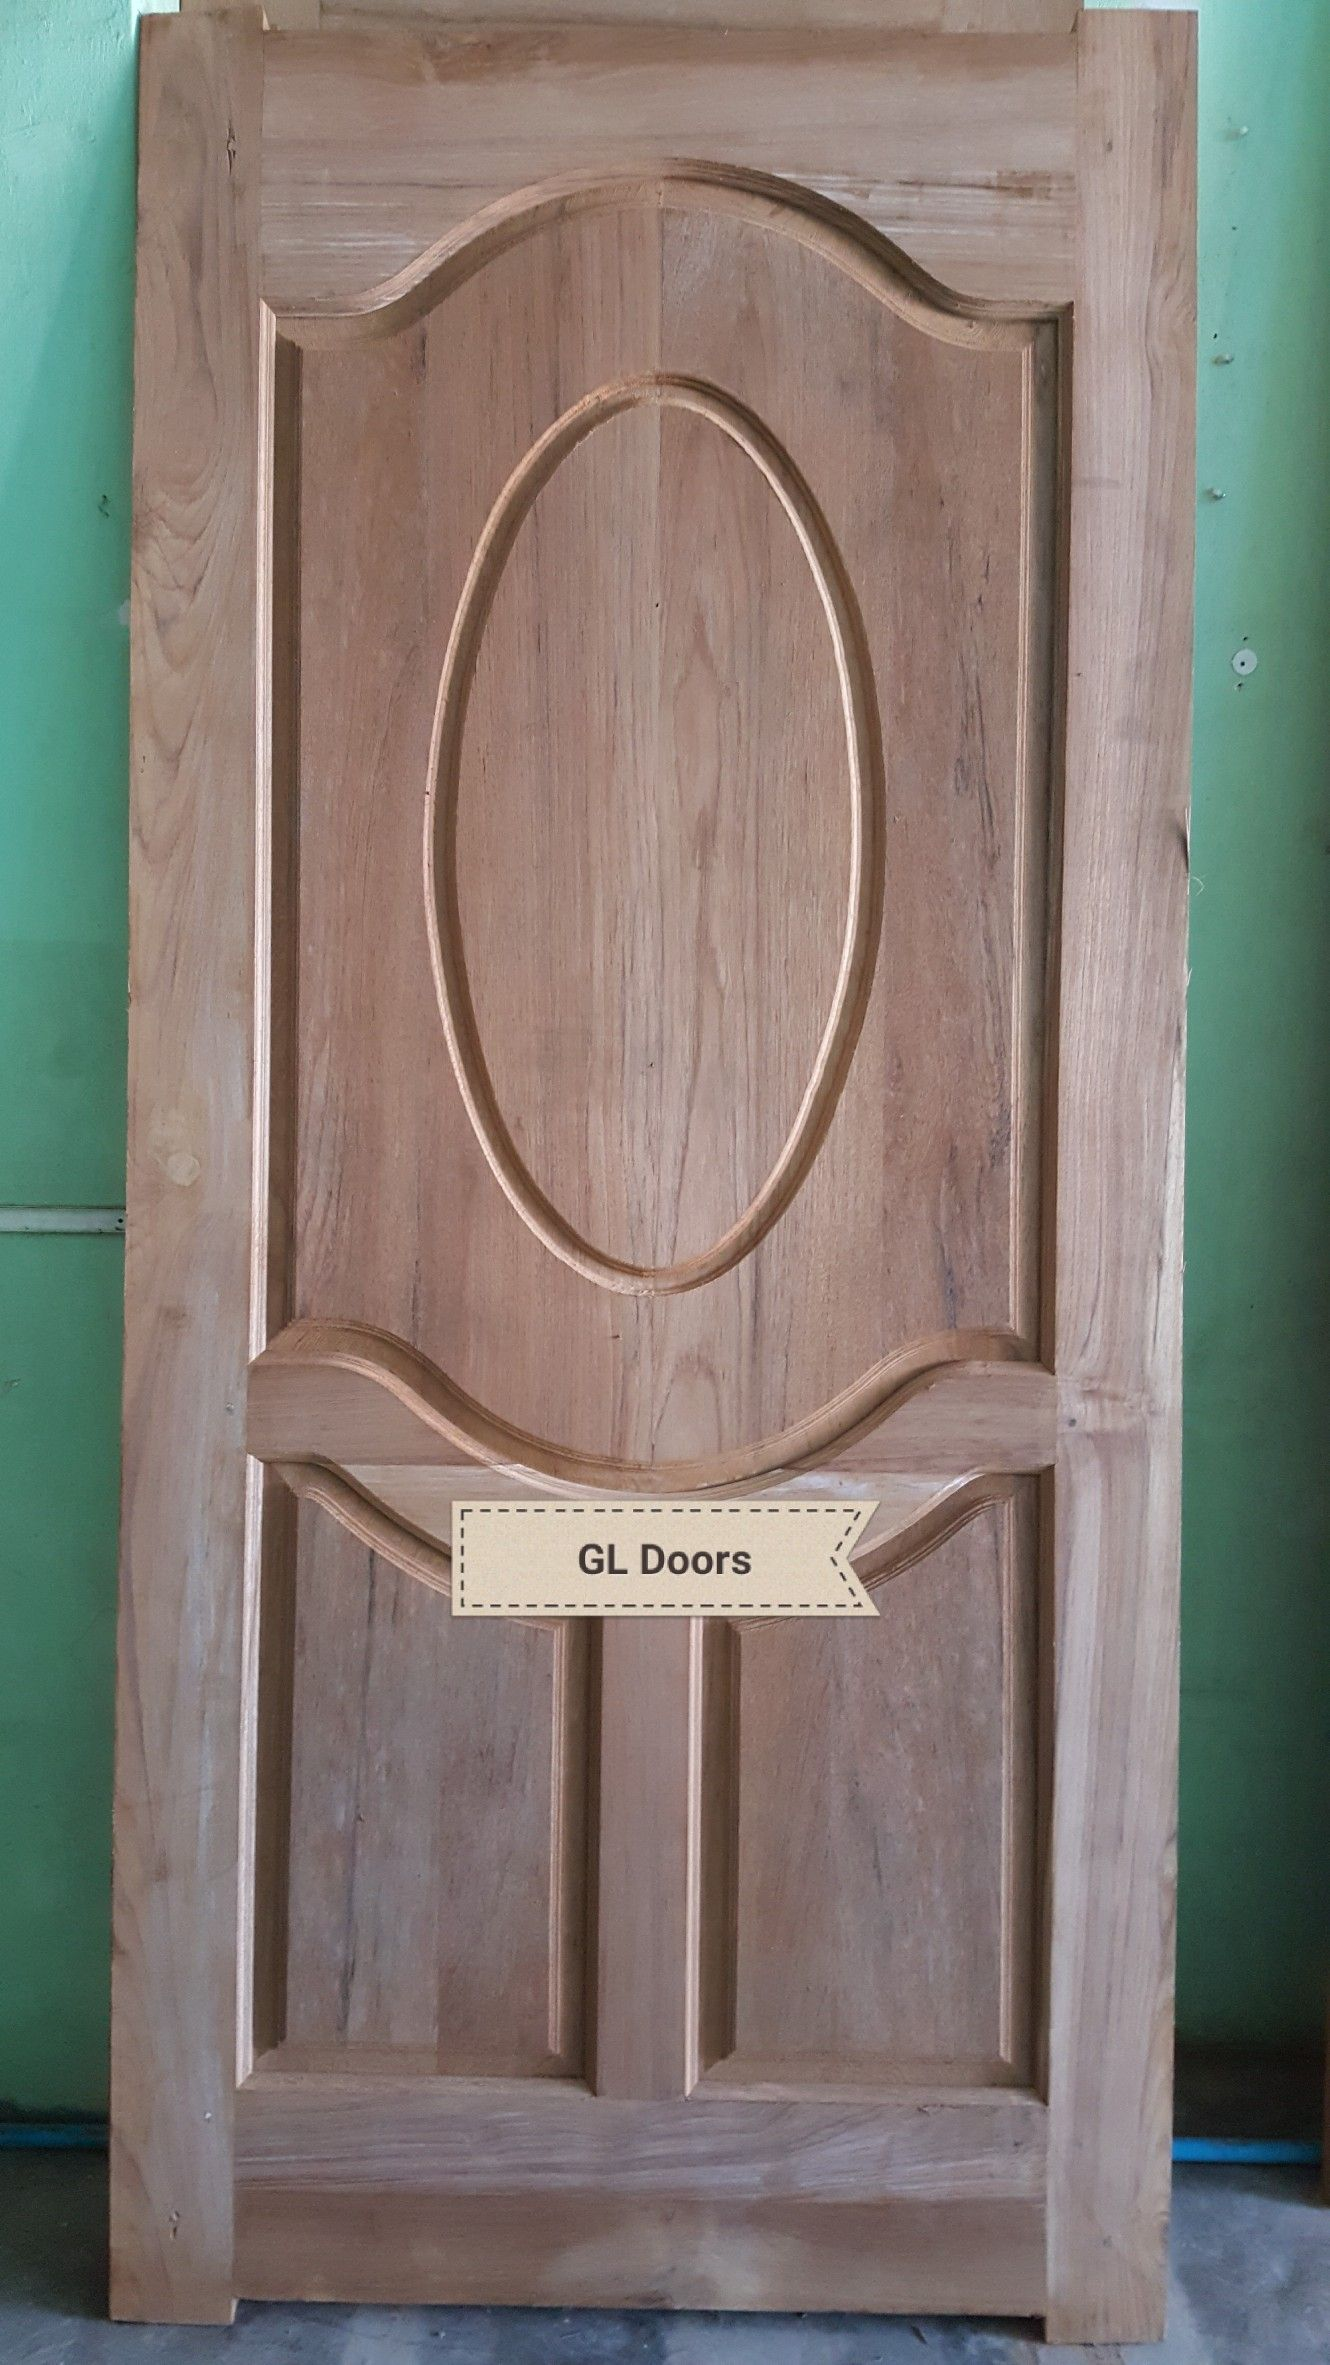 Entrance Doors Wood Gl on